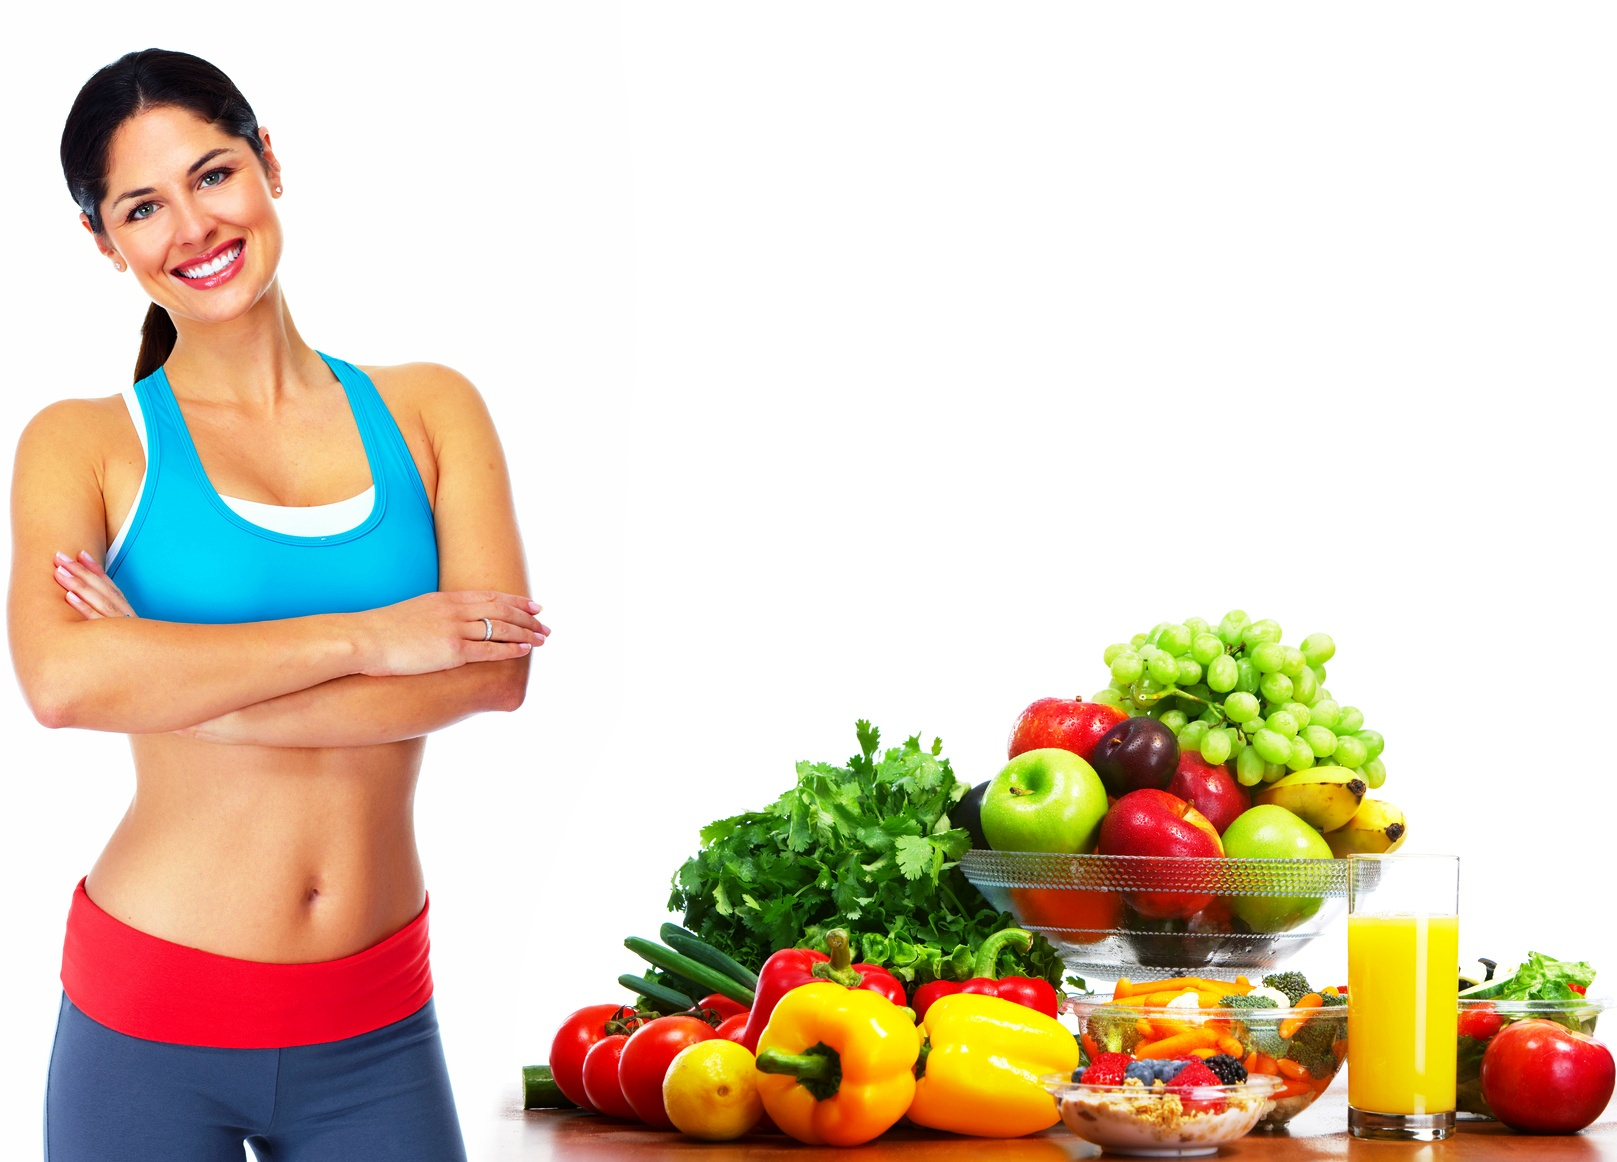 Diet and benefits of regular physical activity